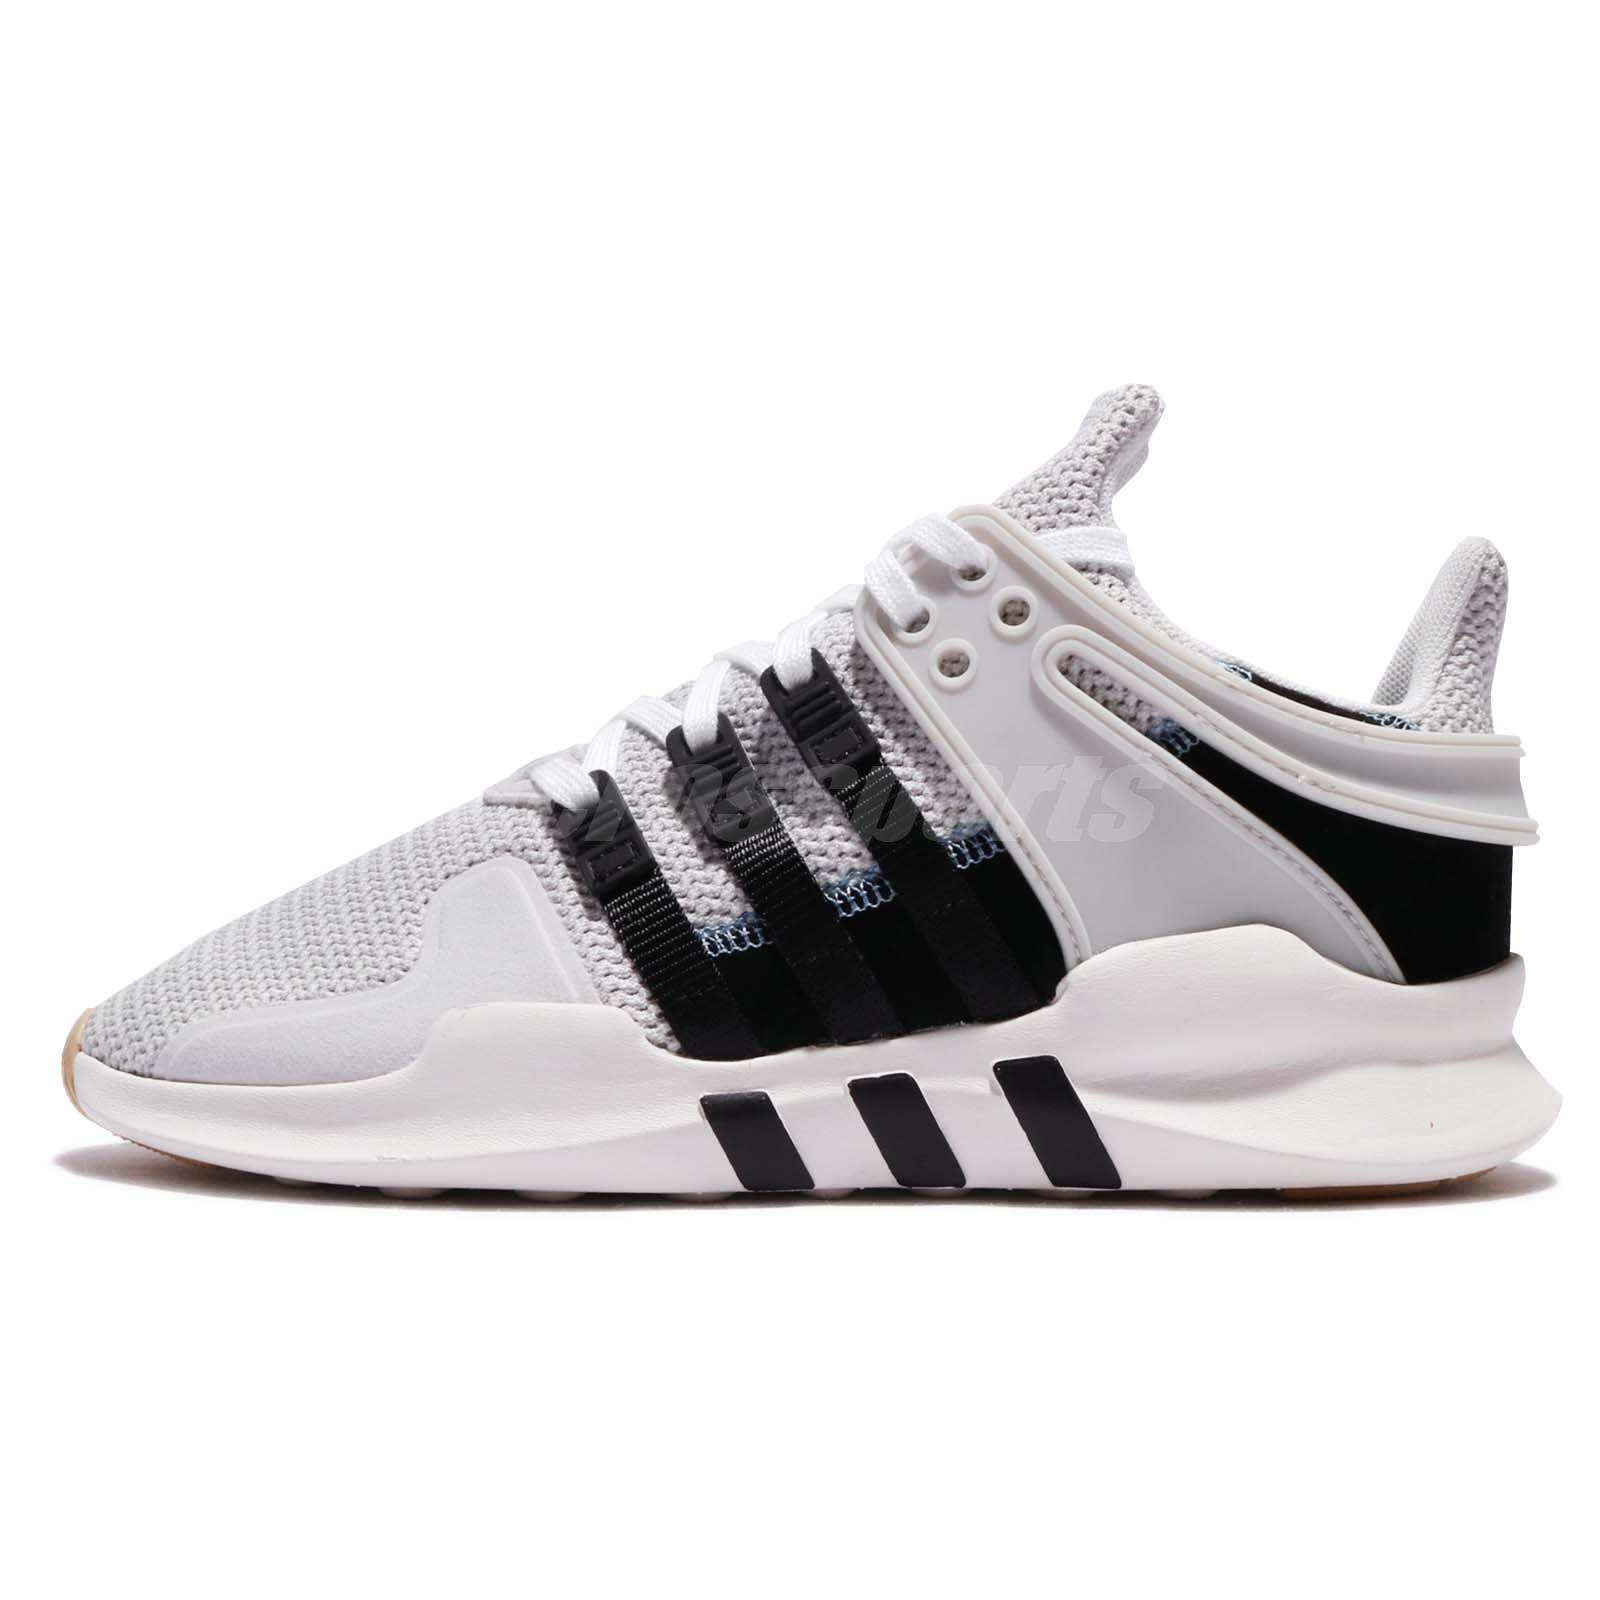 adidas Originals EQT Support ADV W White Grey Black Women Running Shoes CQ2253